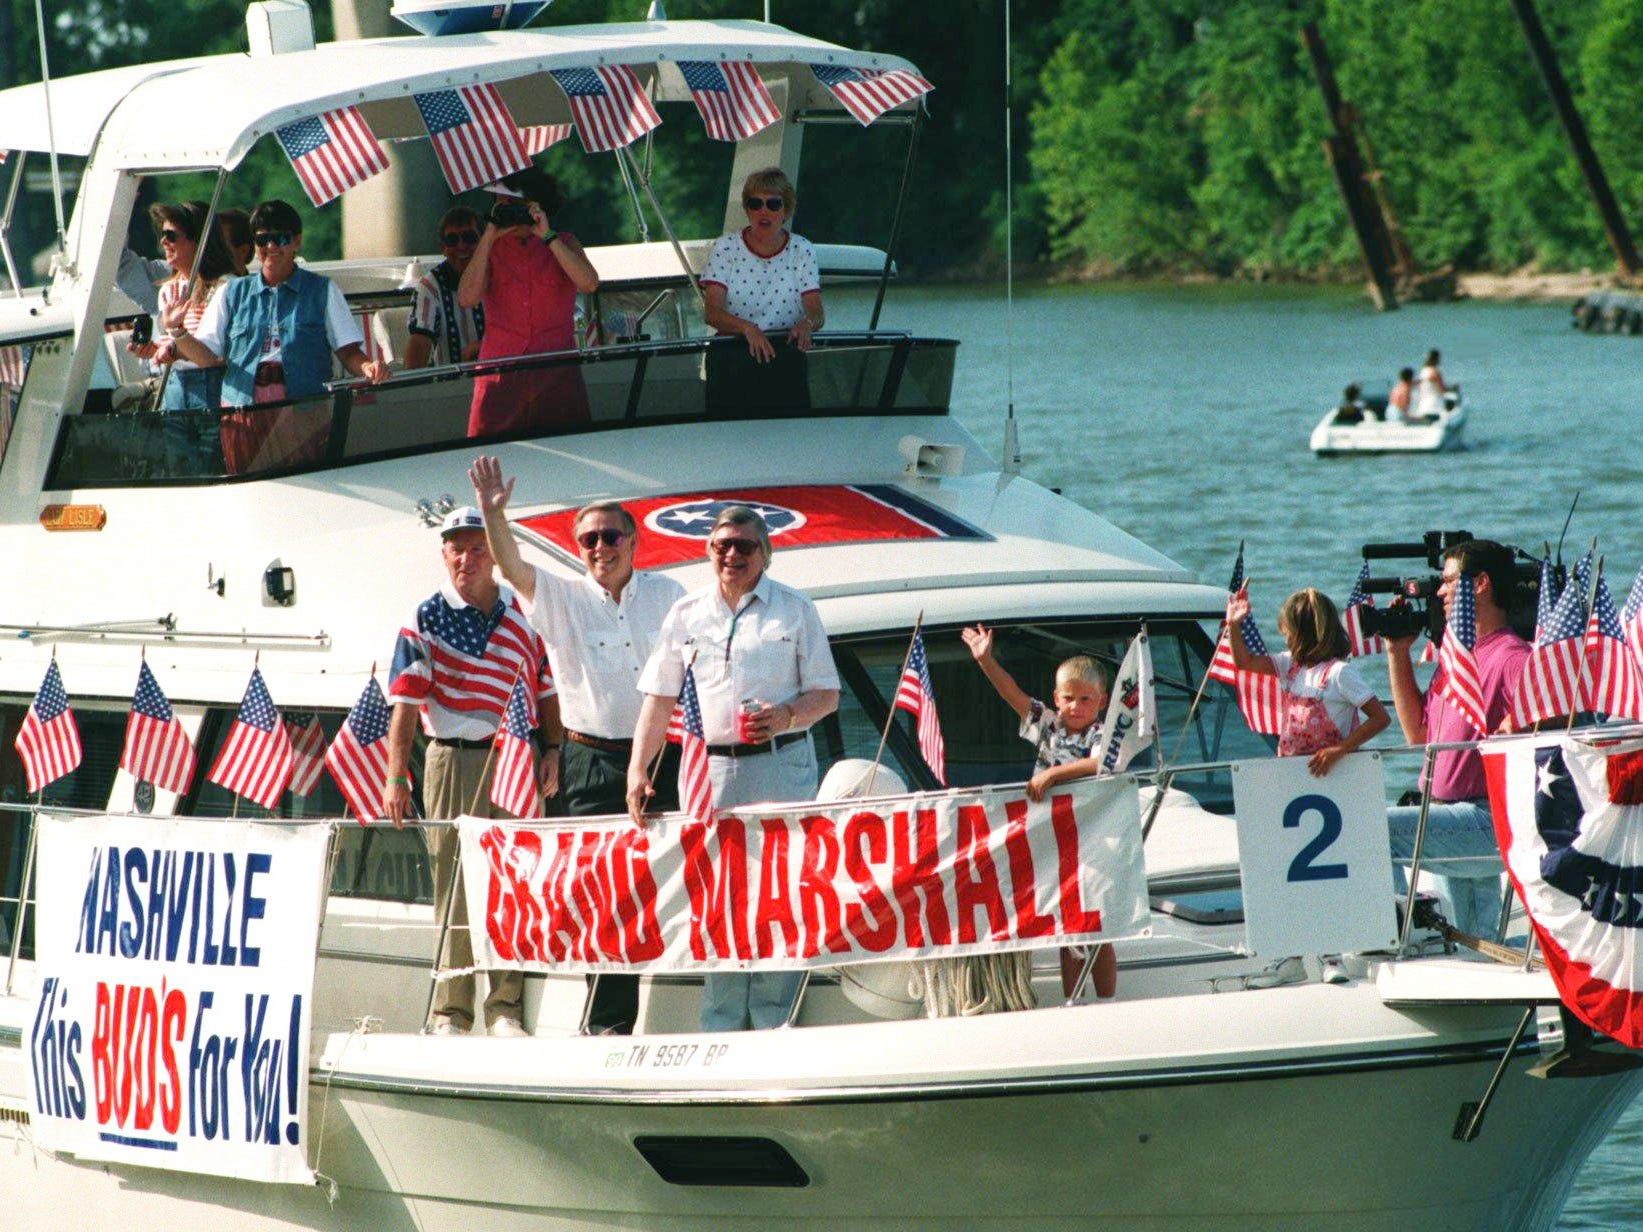 Metro Mayor Phil Bredesen and grand marshal Houston Oilers owner Bud Adams, center, greet the crowd at Riverfront Park during the boat parade for the 4th of July holidays downtown Nashville July 4, 1996.